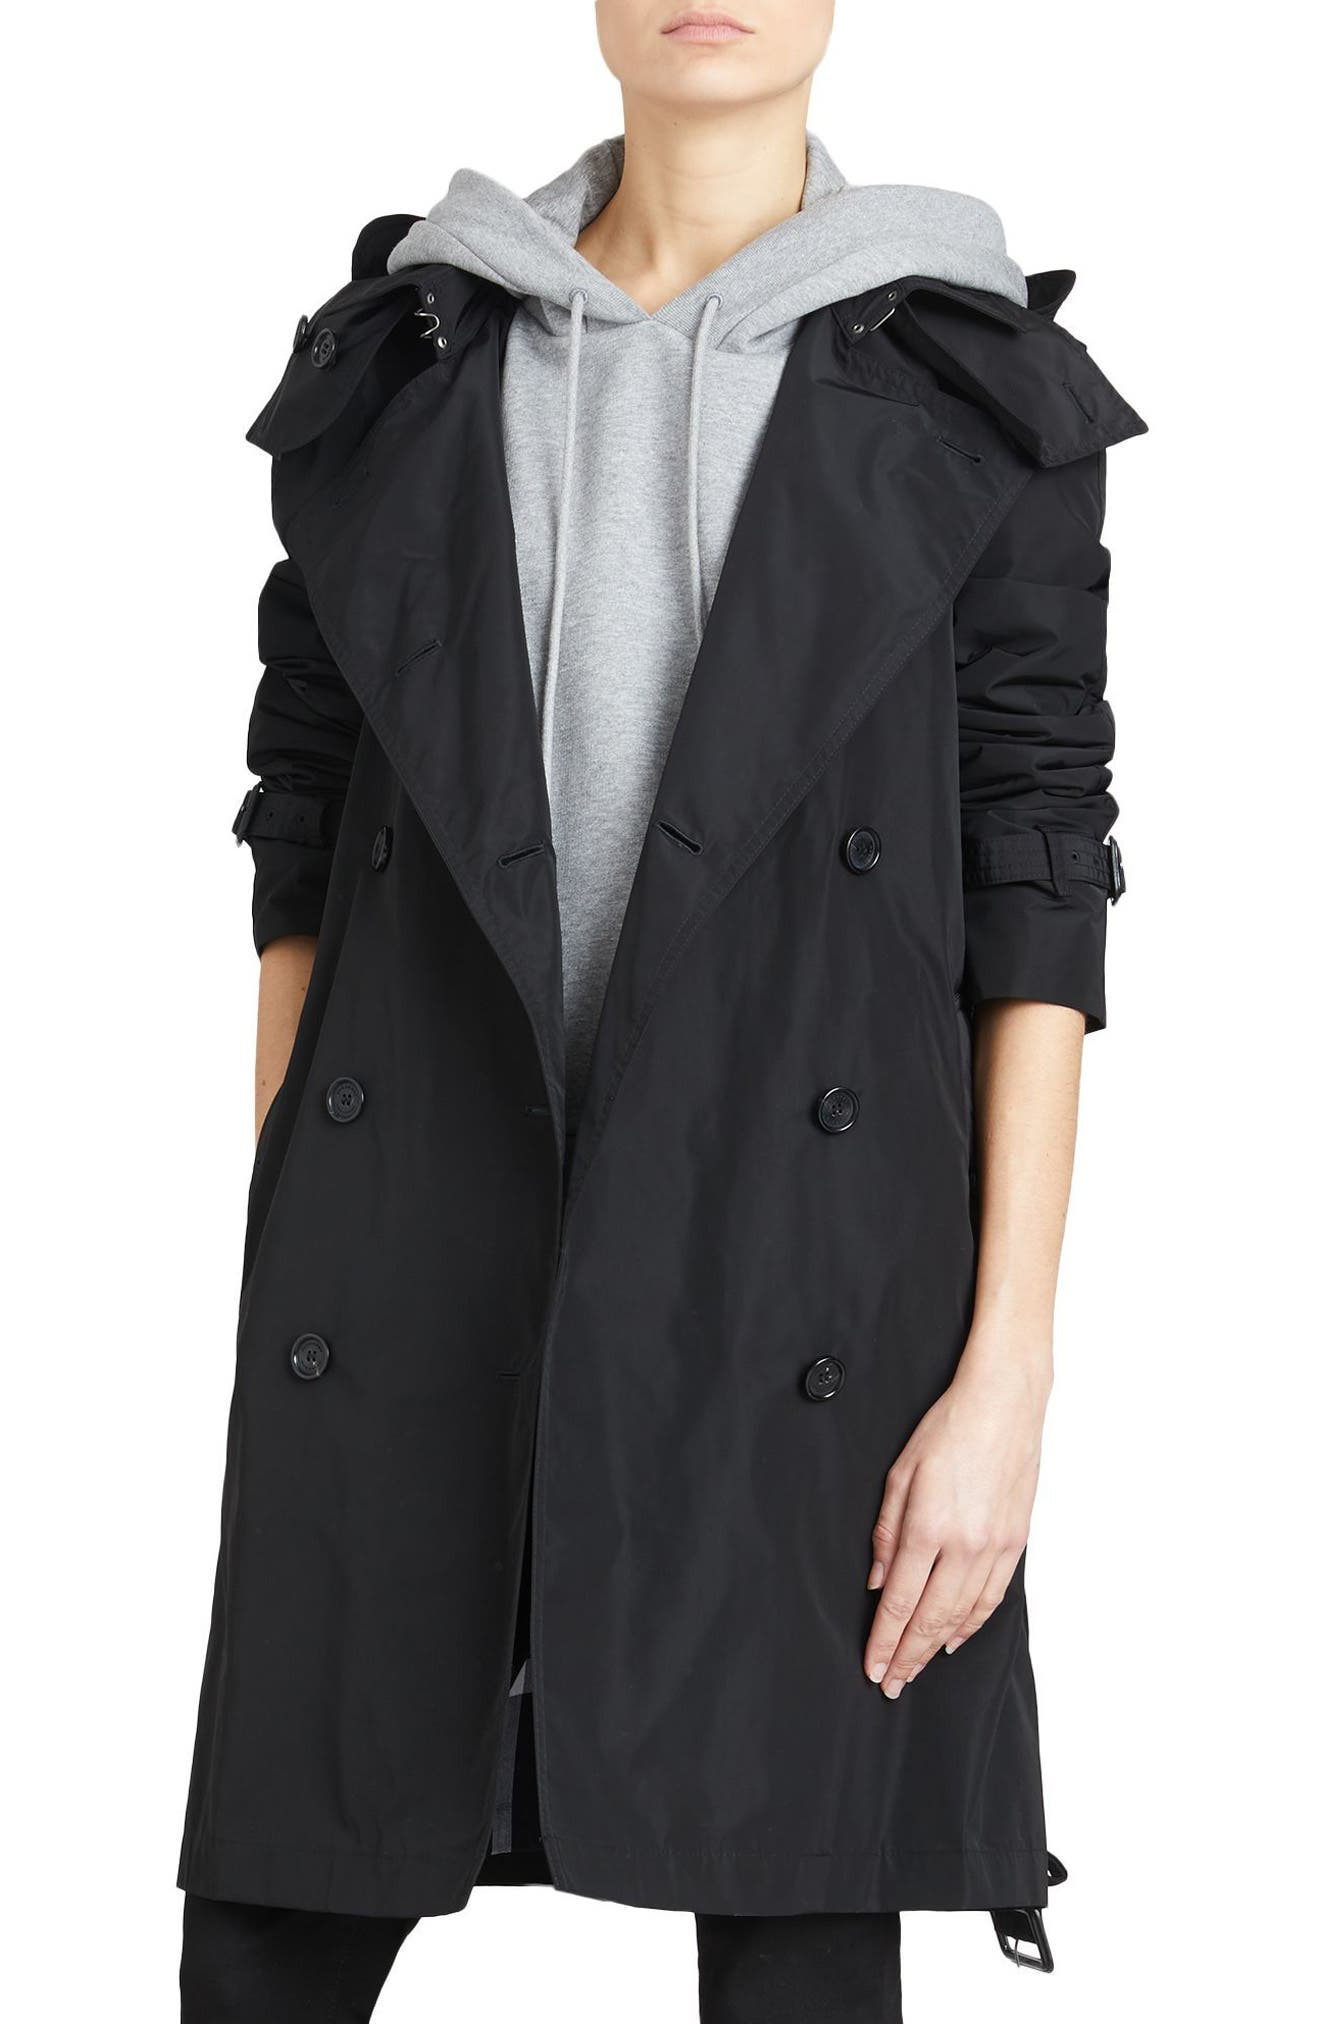 Amberford Taffeta Trench Coat with Detachable Hood,                             Alternate thumbnail 3, color,                             BLACK